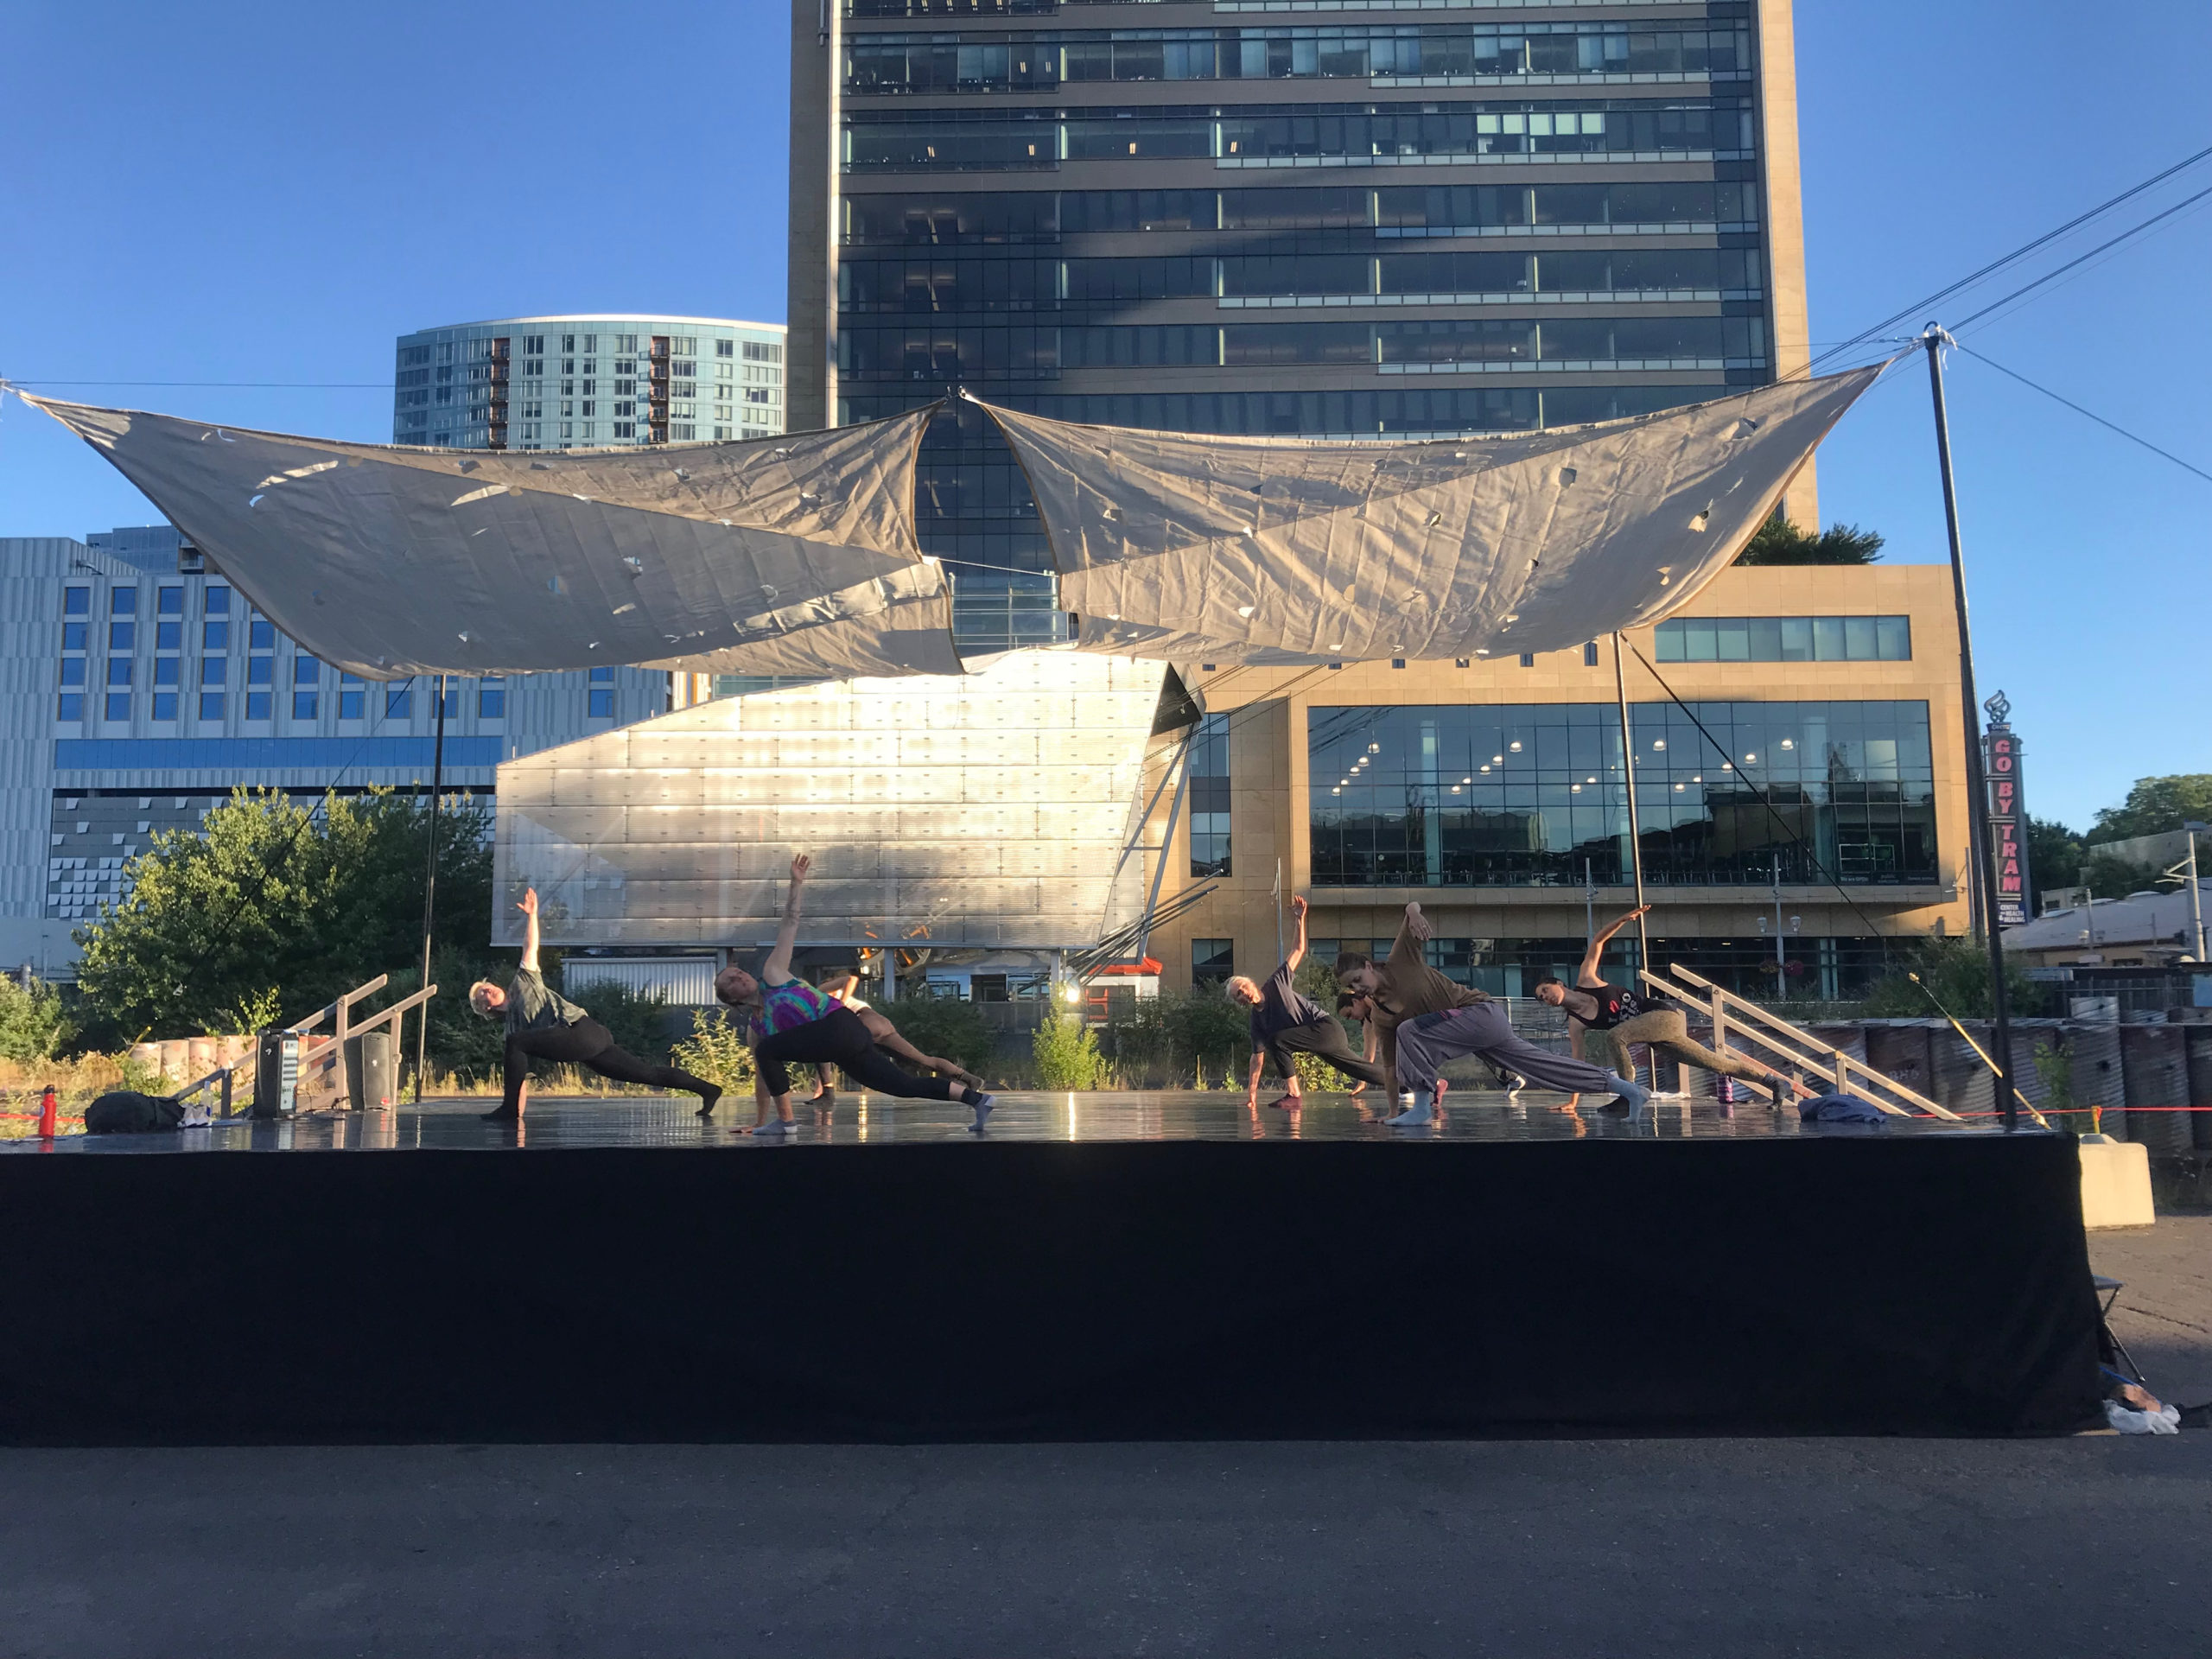 image of outdoor stage with dancers on it